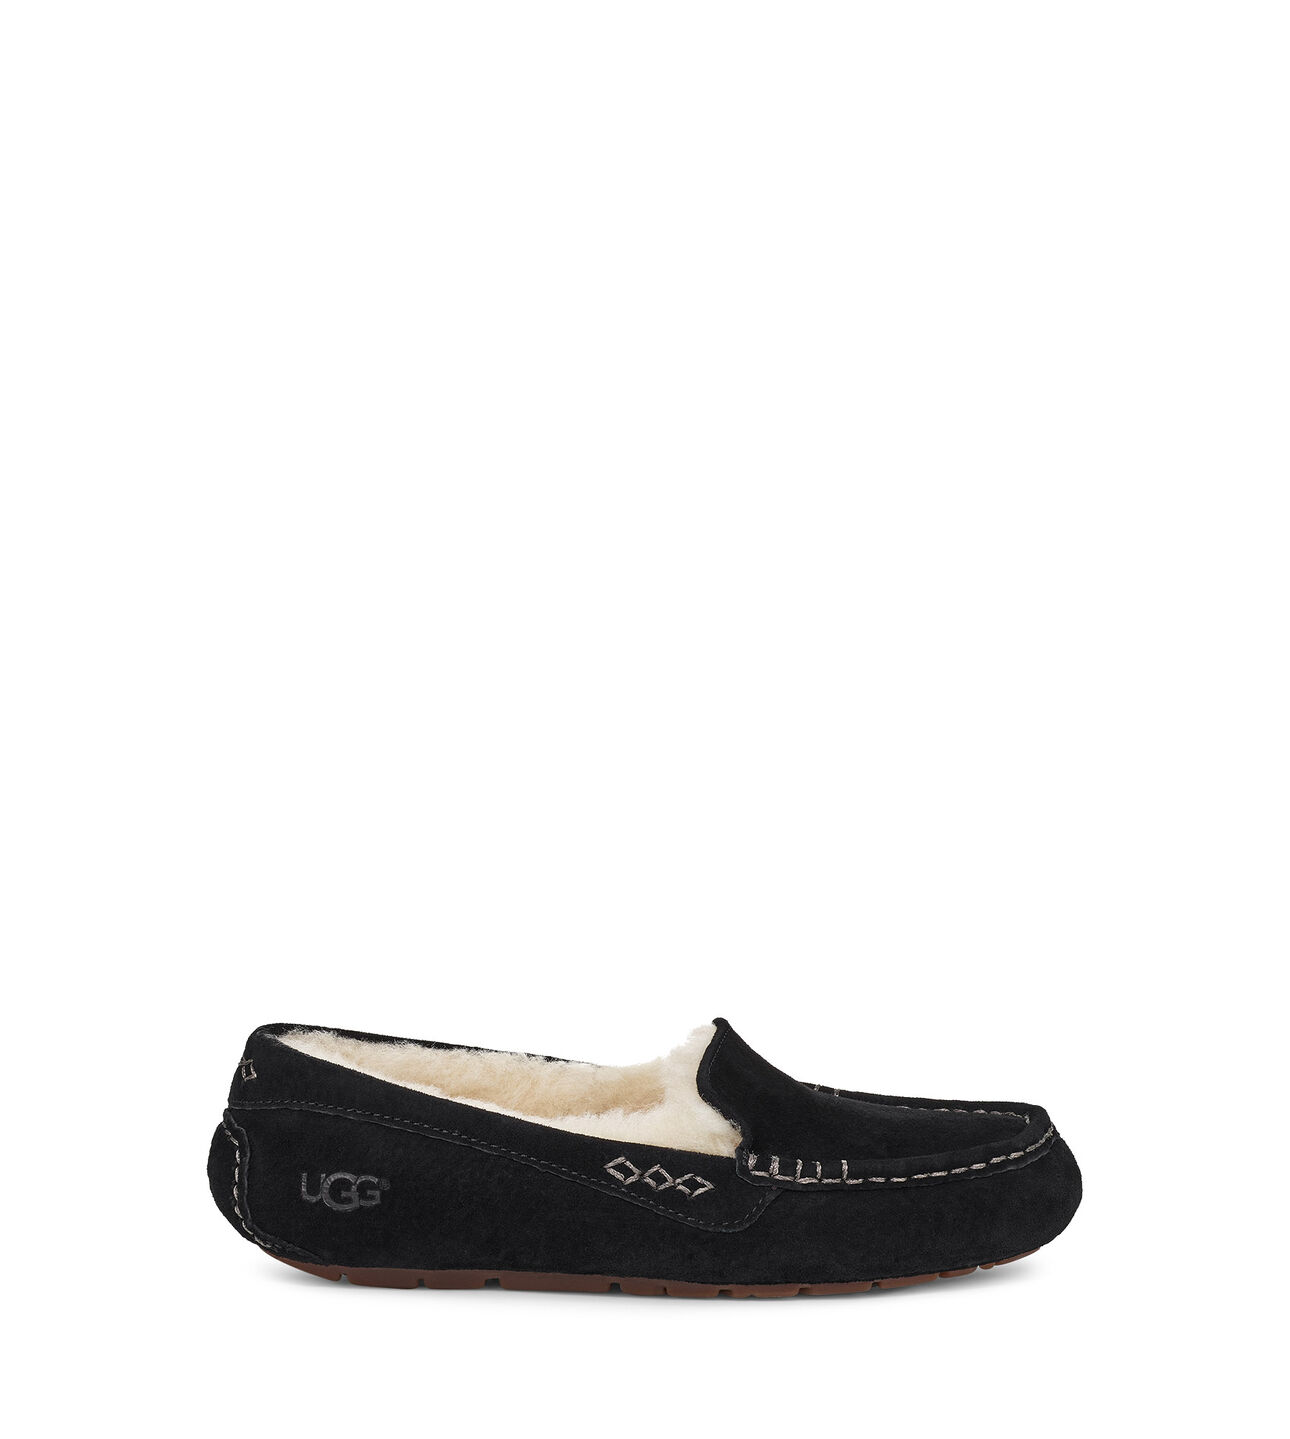 ff09fb7a194 Ansley Slipper